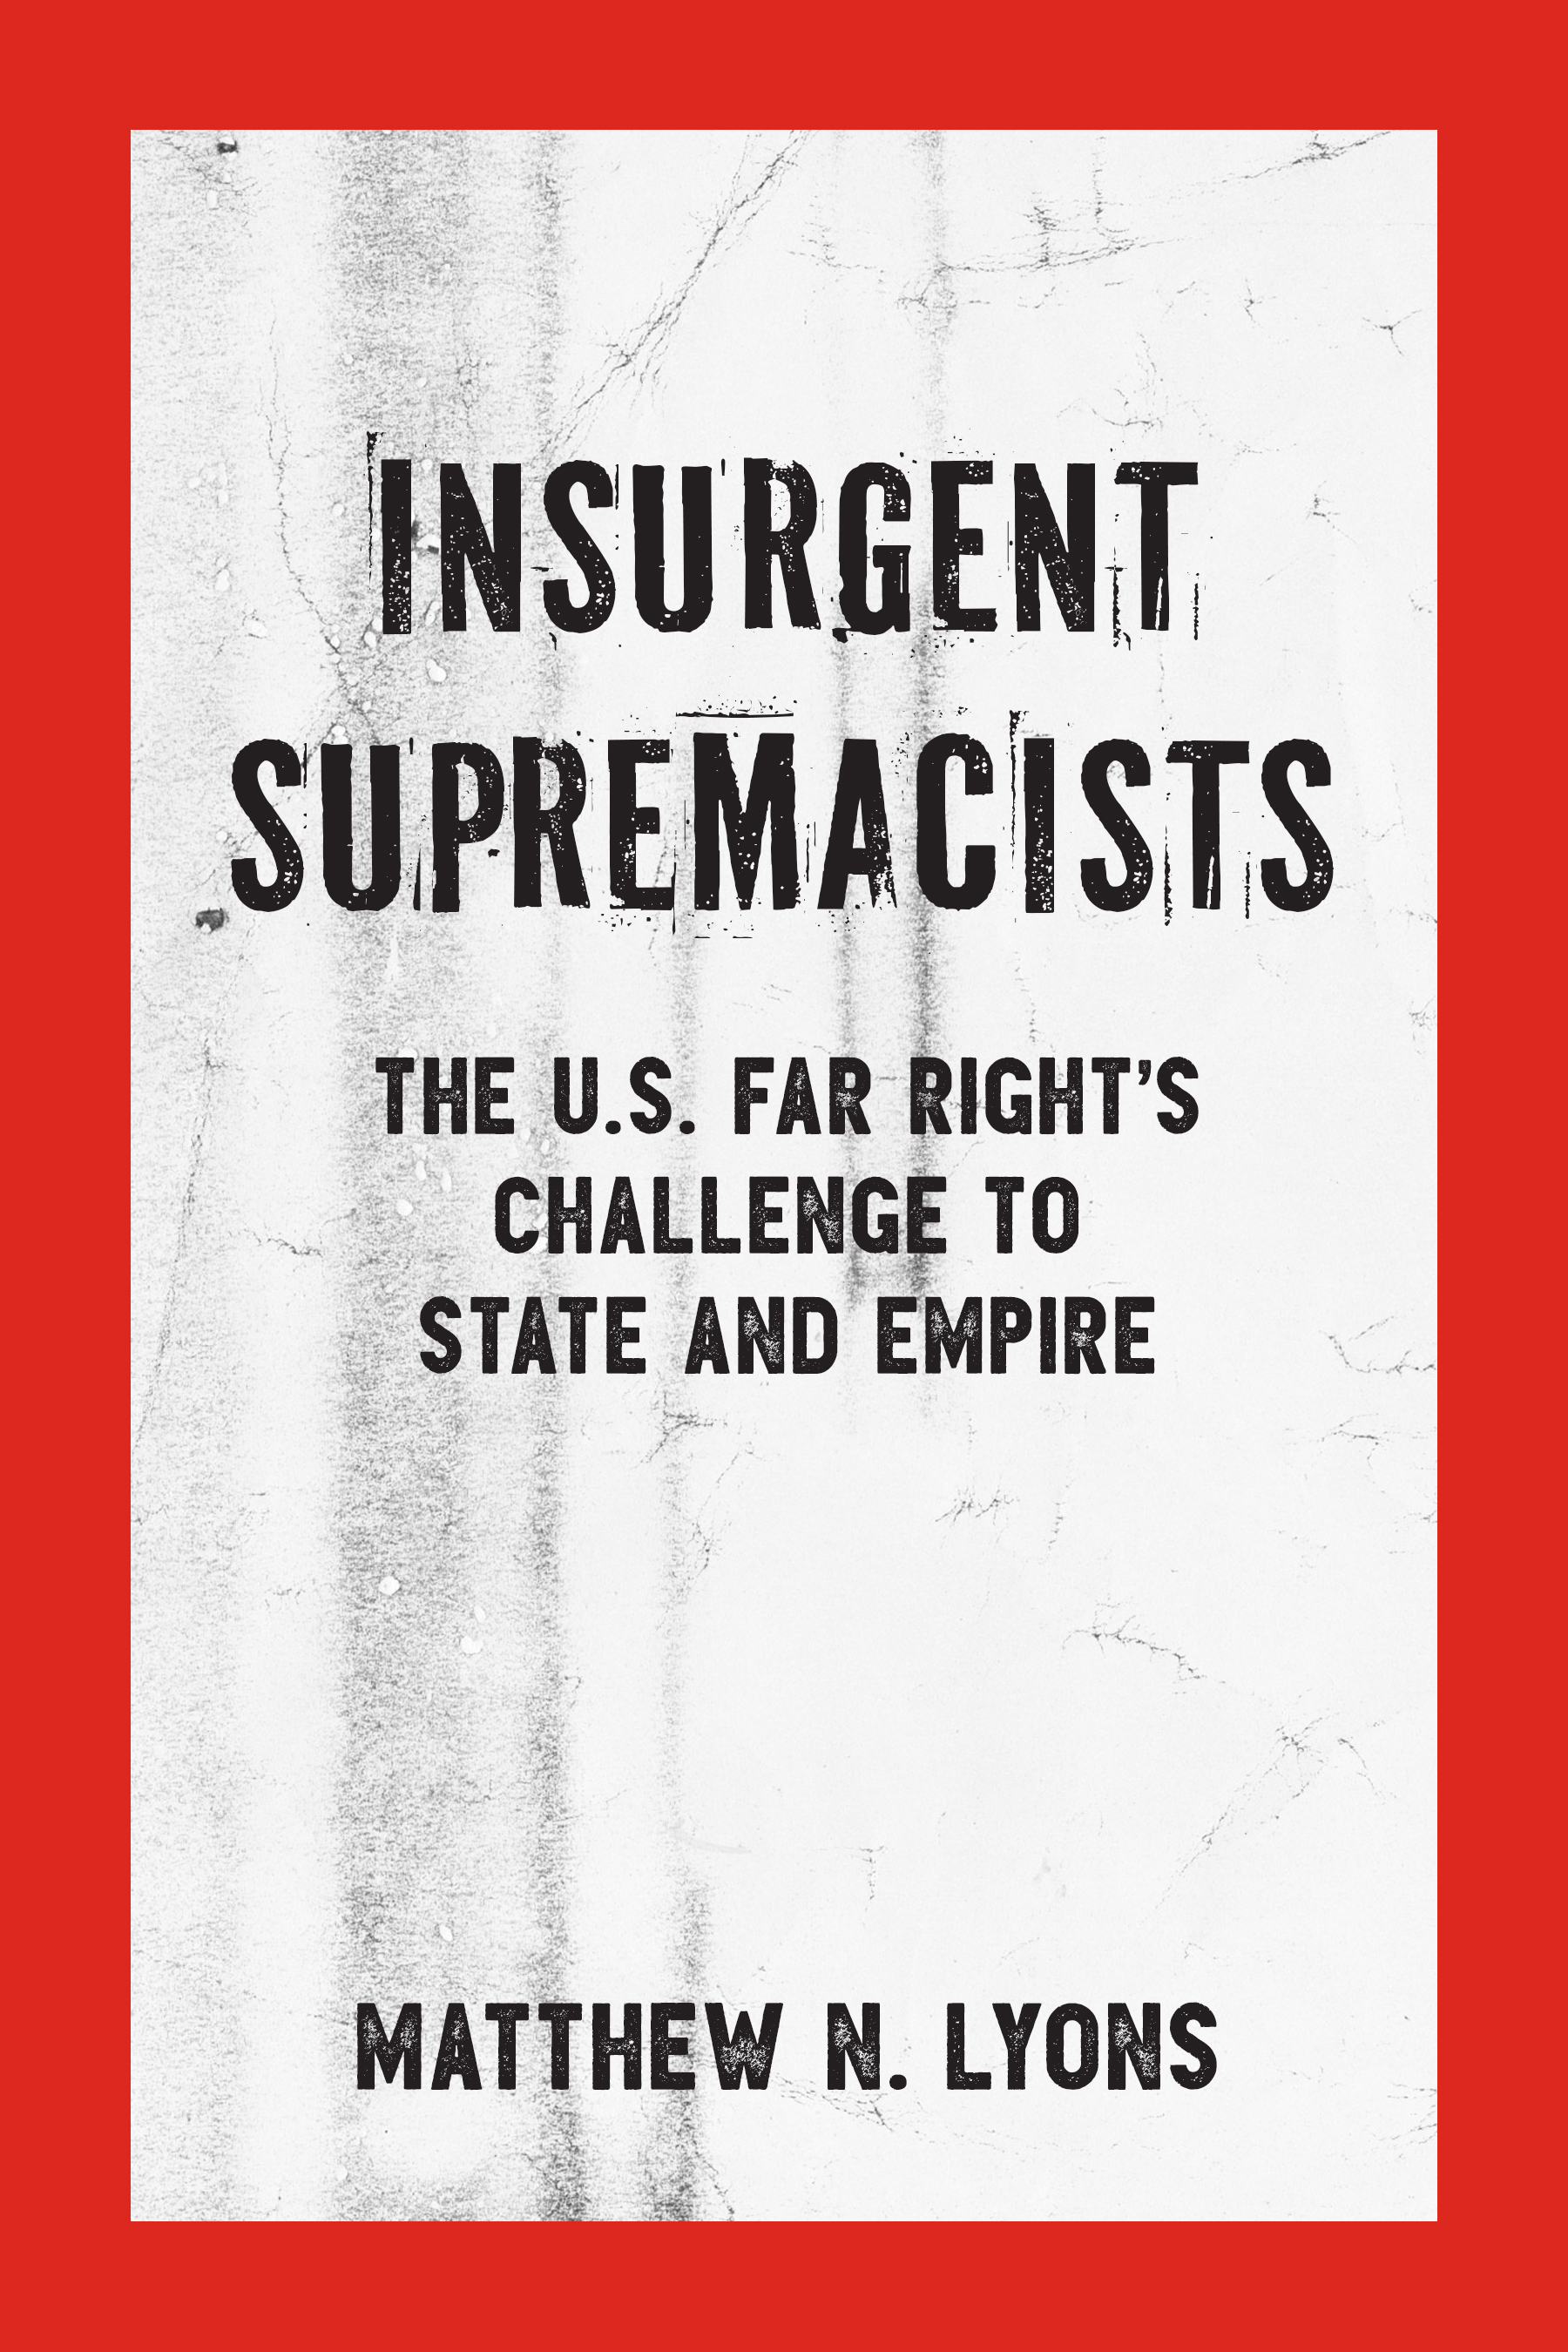 Insurgent Supremacists: Understanding and Fighting The U.S. Far Right with Matthew N. Lyons